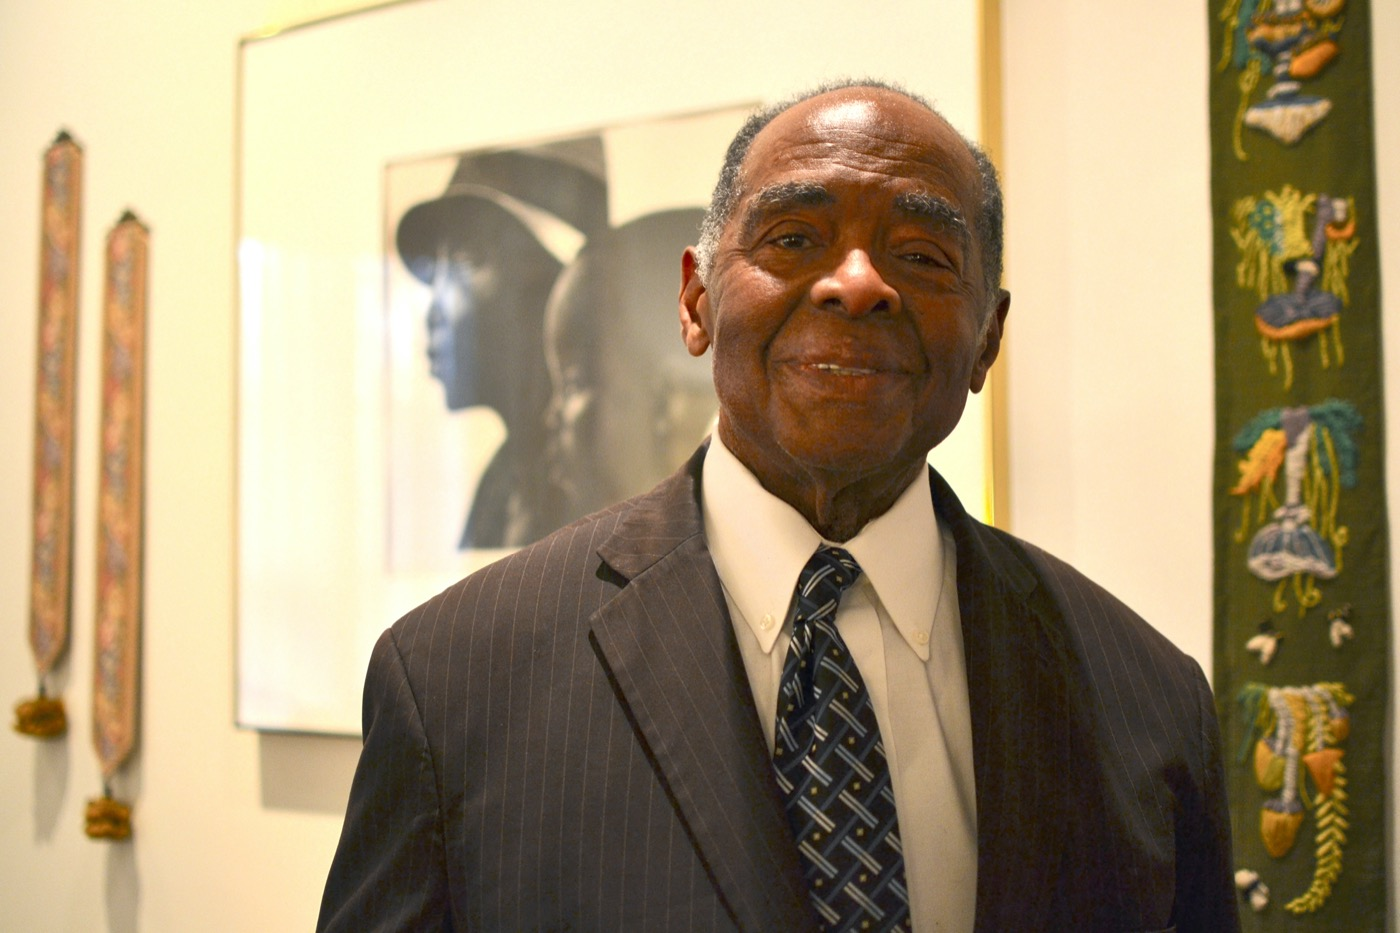 a black man in a suit with a large framed photograph behind him smiles at the camera